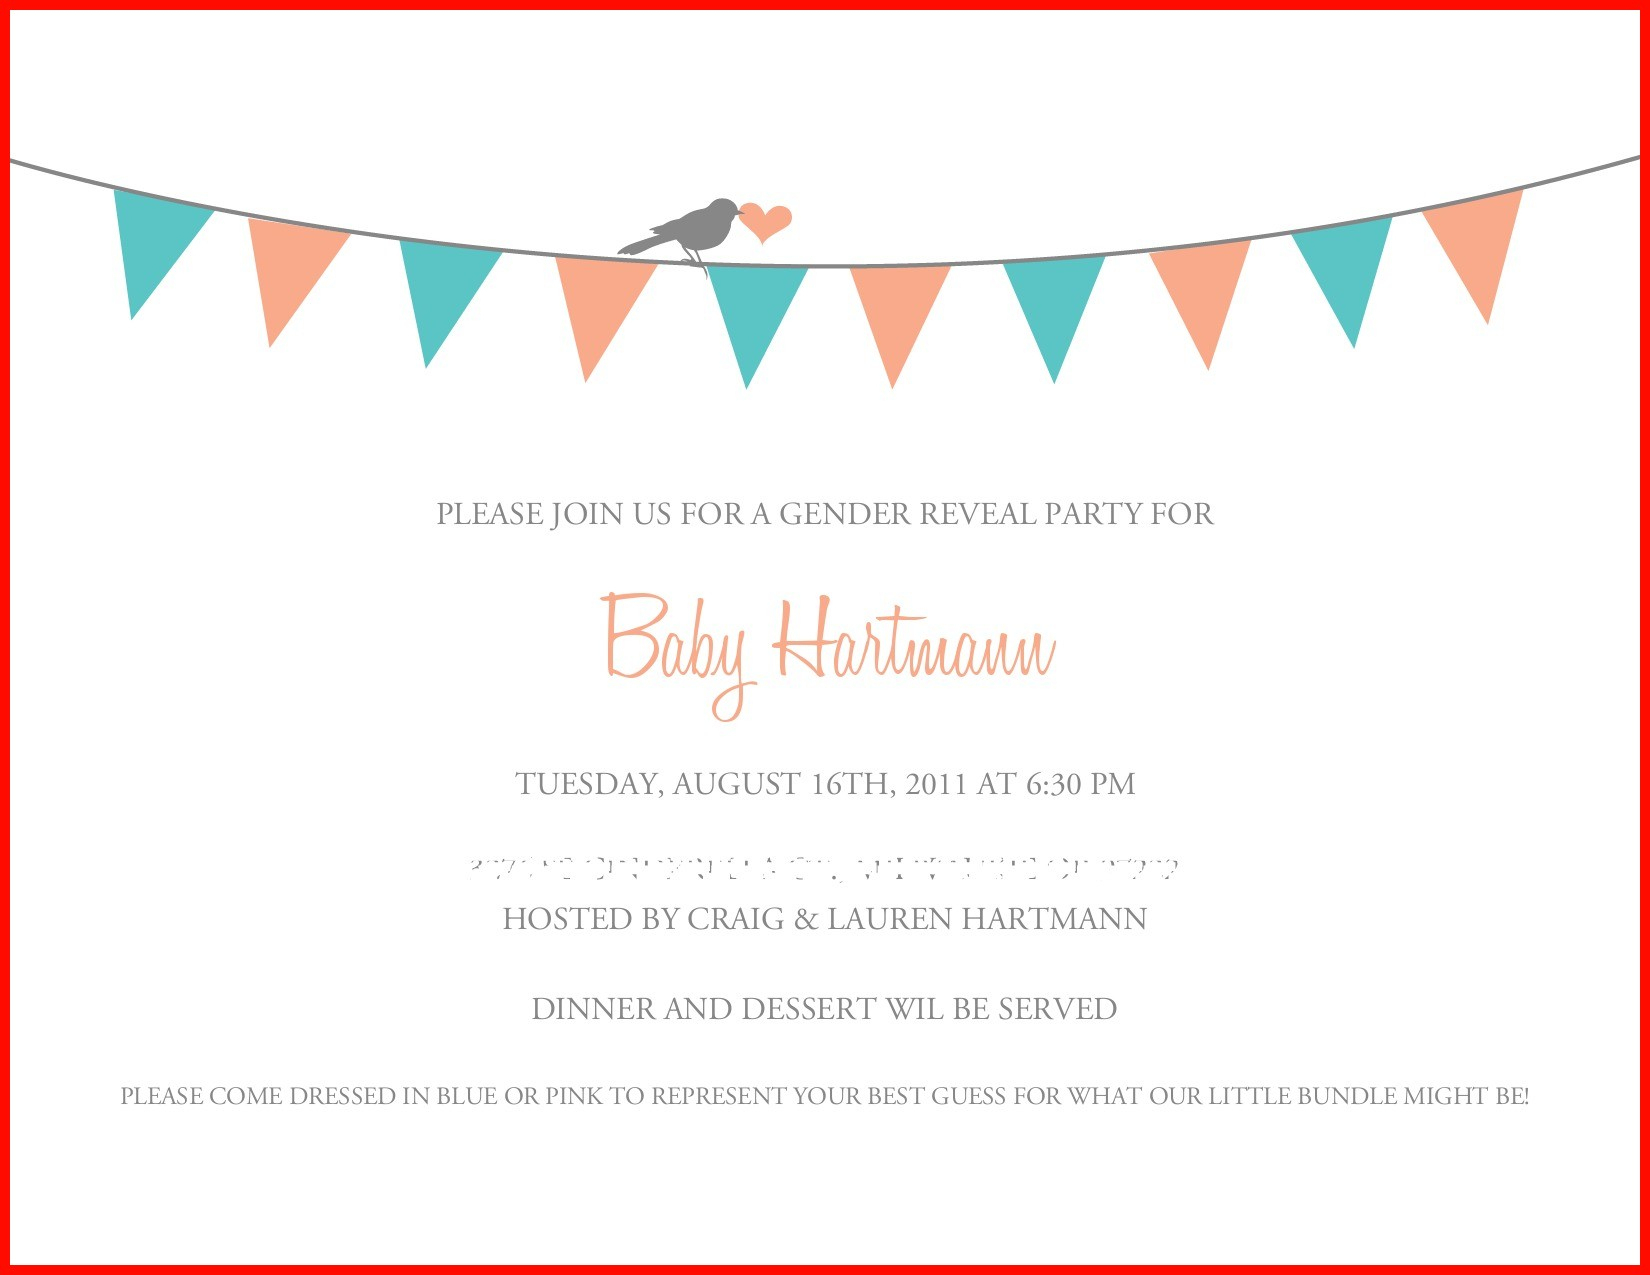 001 Free Printable Gender Reveal Invitations Invite For Your Party - Free Printable Gender Reveal Templates